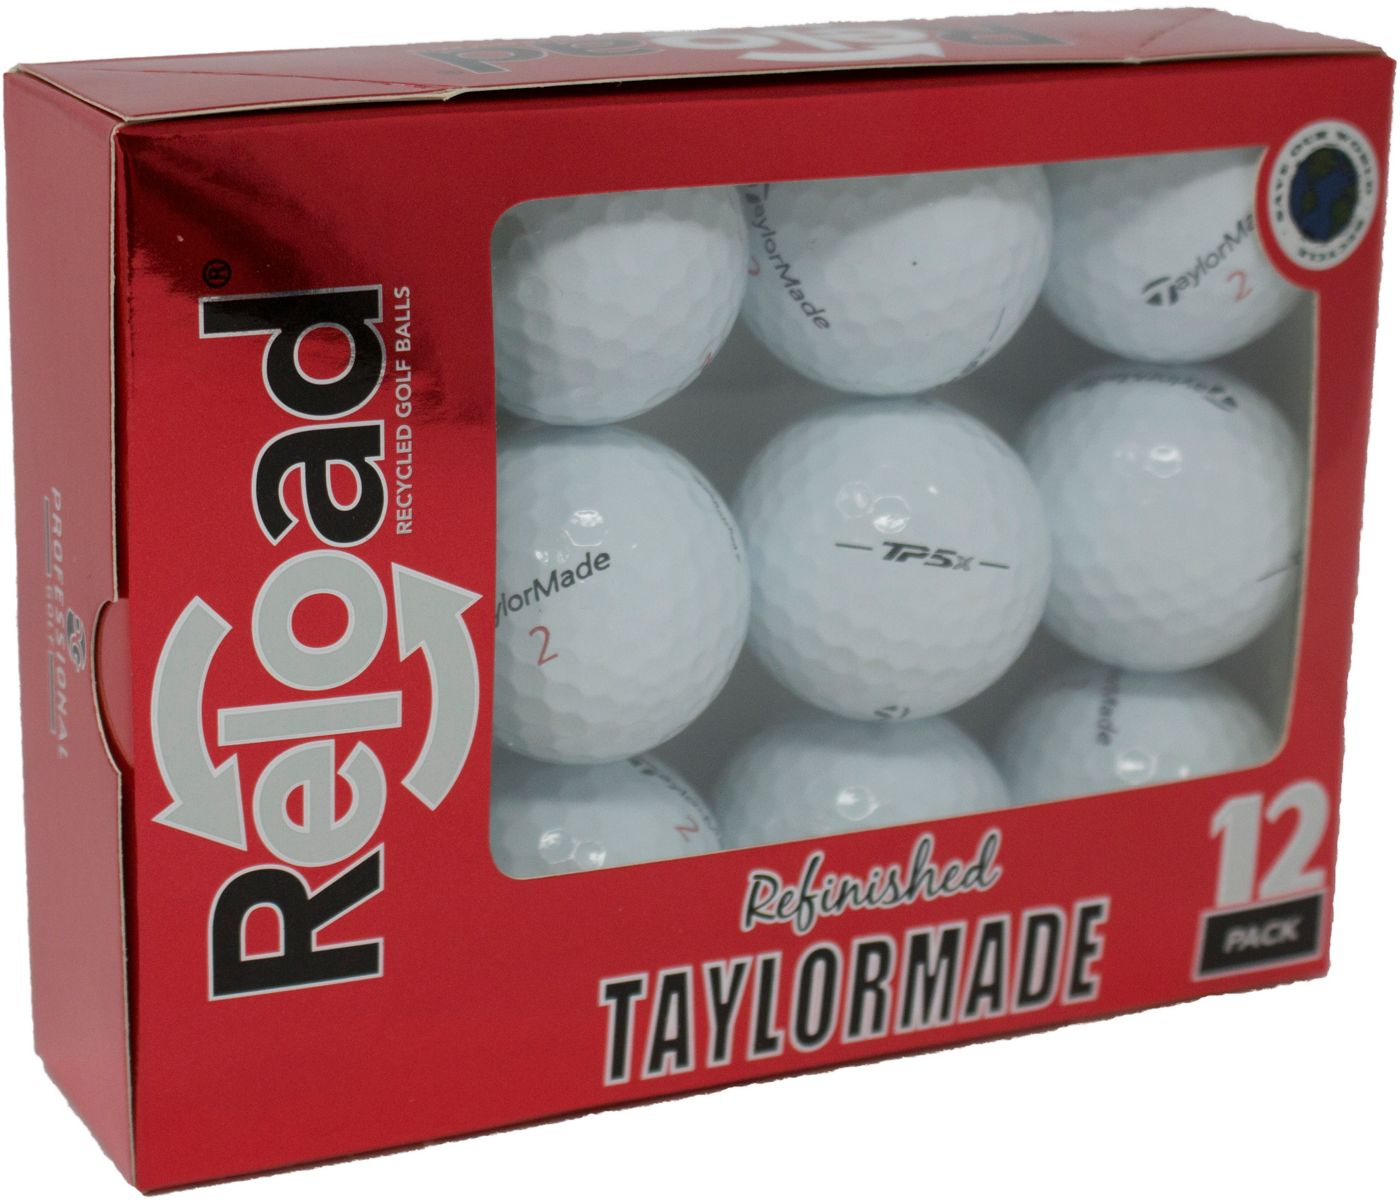 Refurbished TaylorMade TP5x Golf Balls